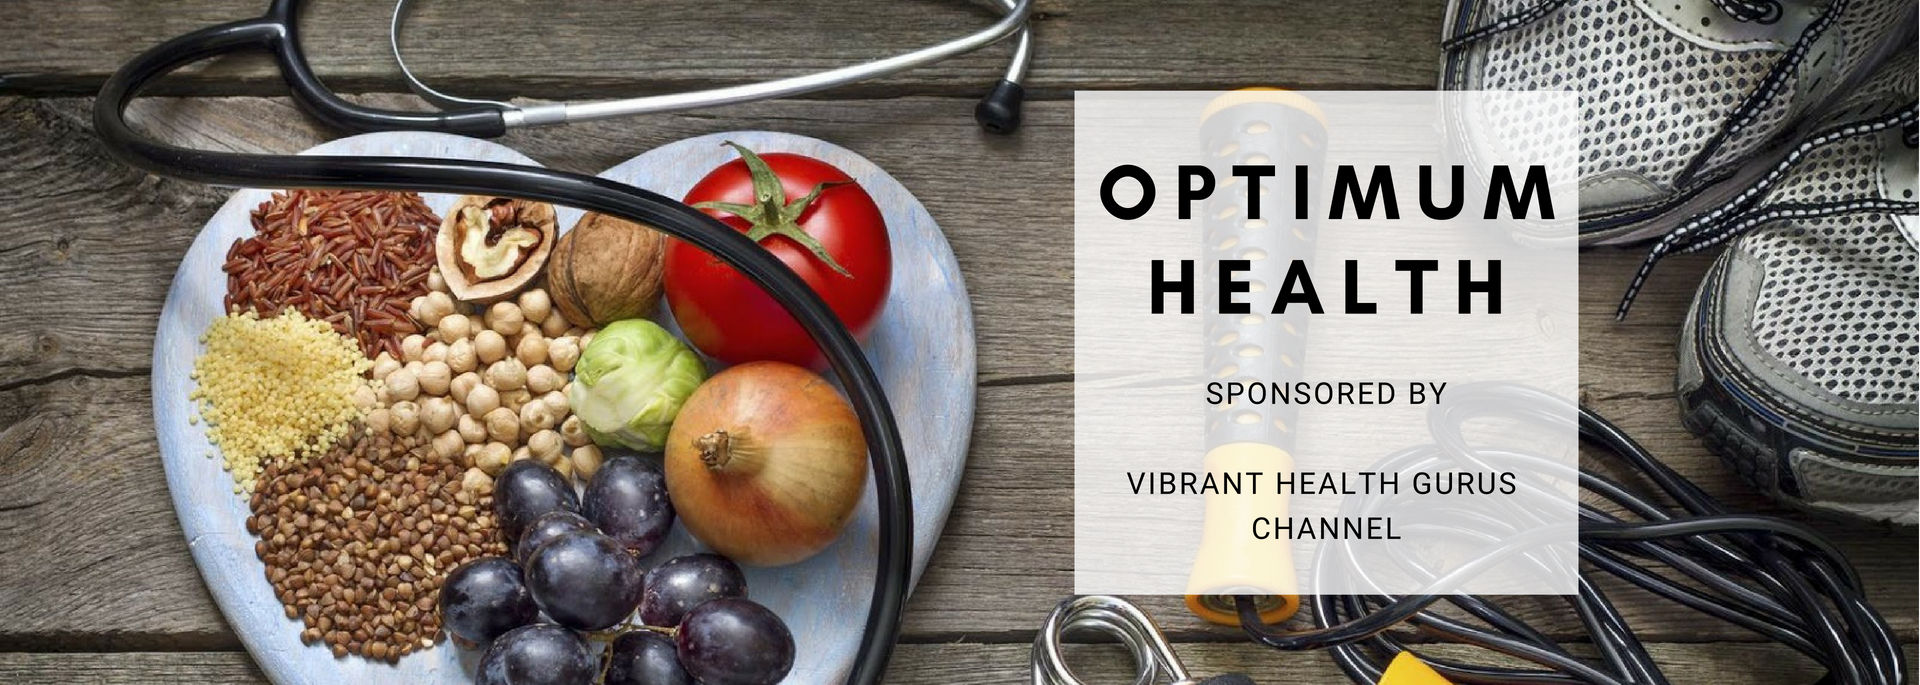 OPTIMUM HEALTH category